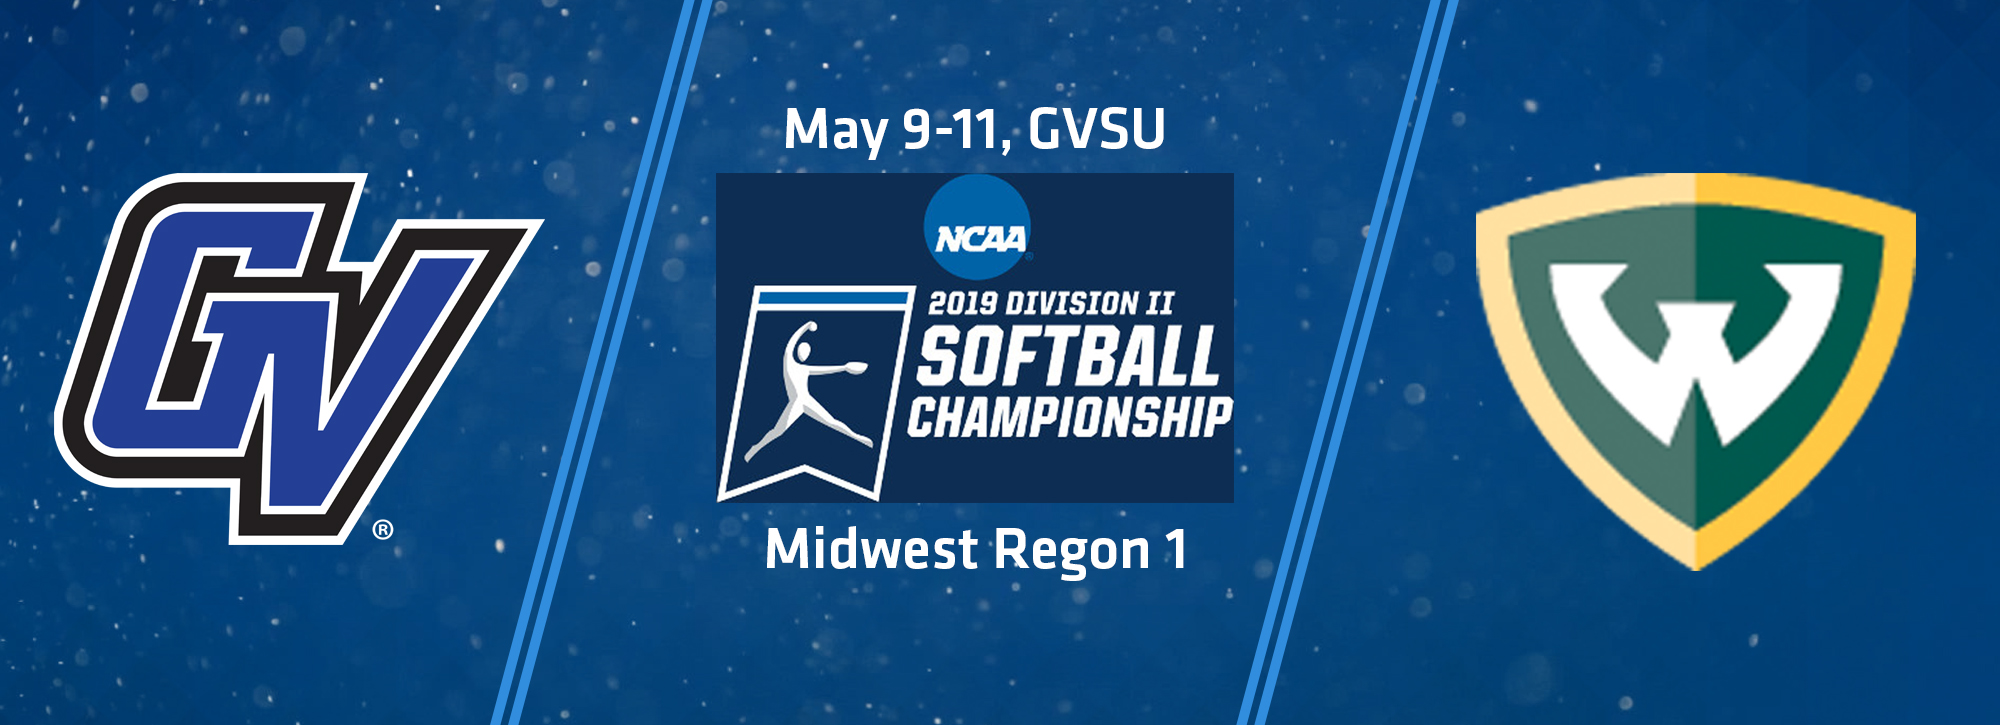 GVSU to host Midwest Region #1 Softball Tournament